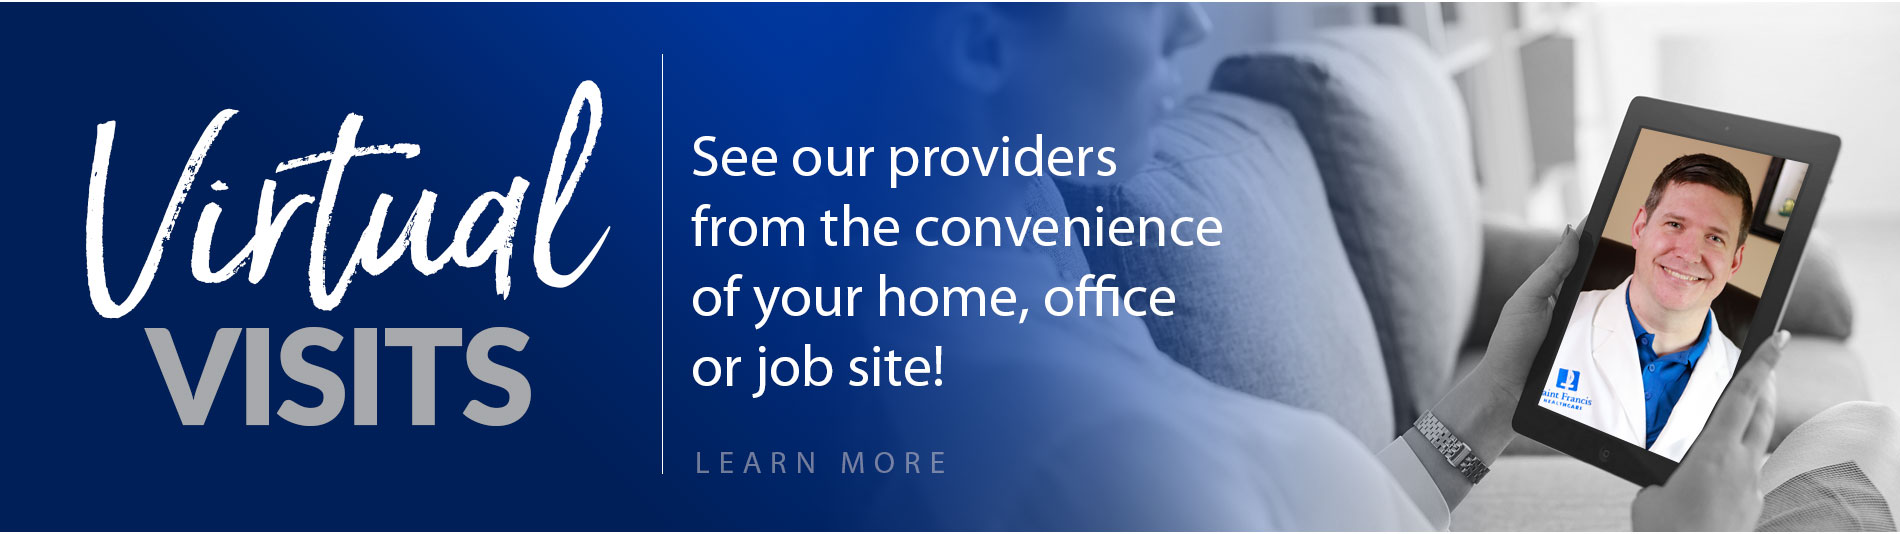 Virtual Visits - See our providers from the convenience of your home, office or job site!